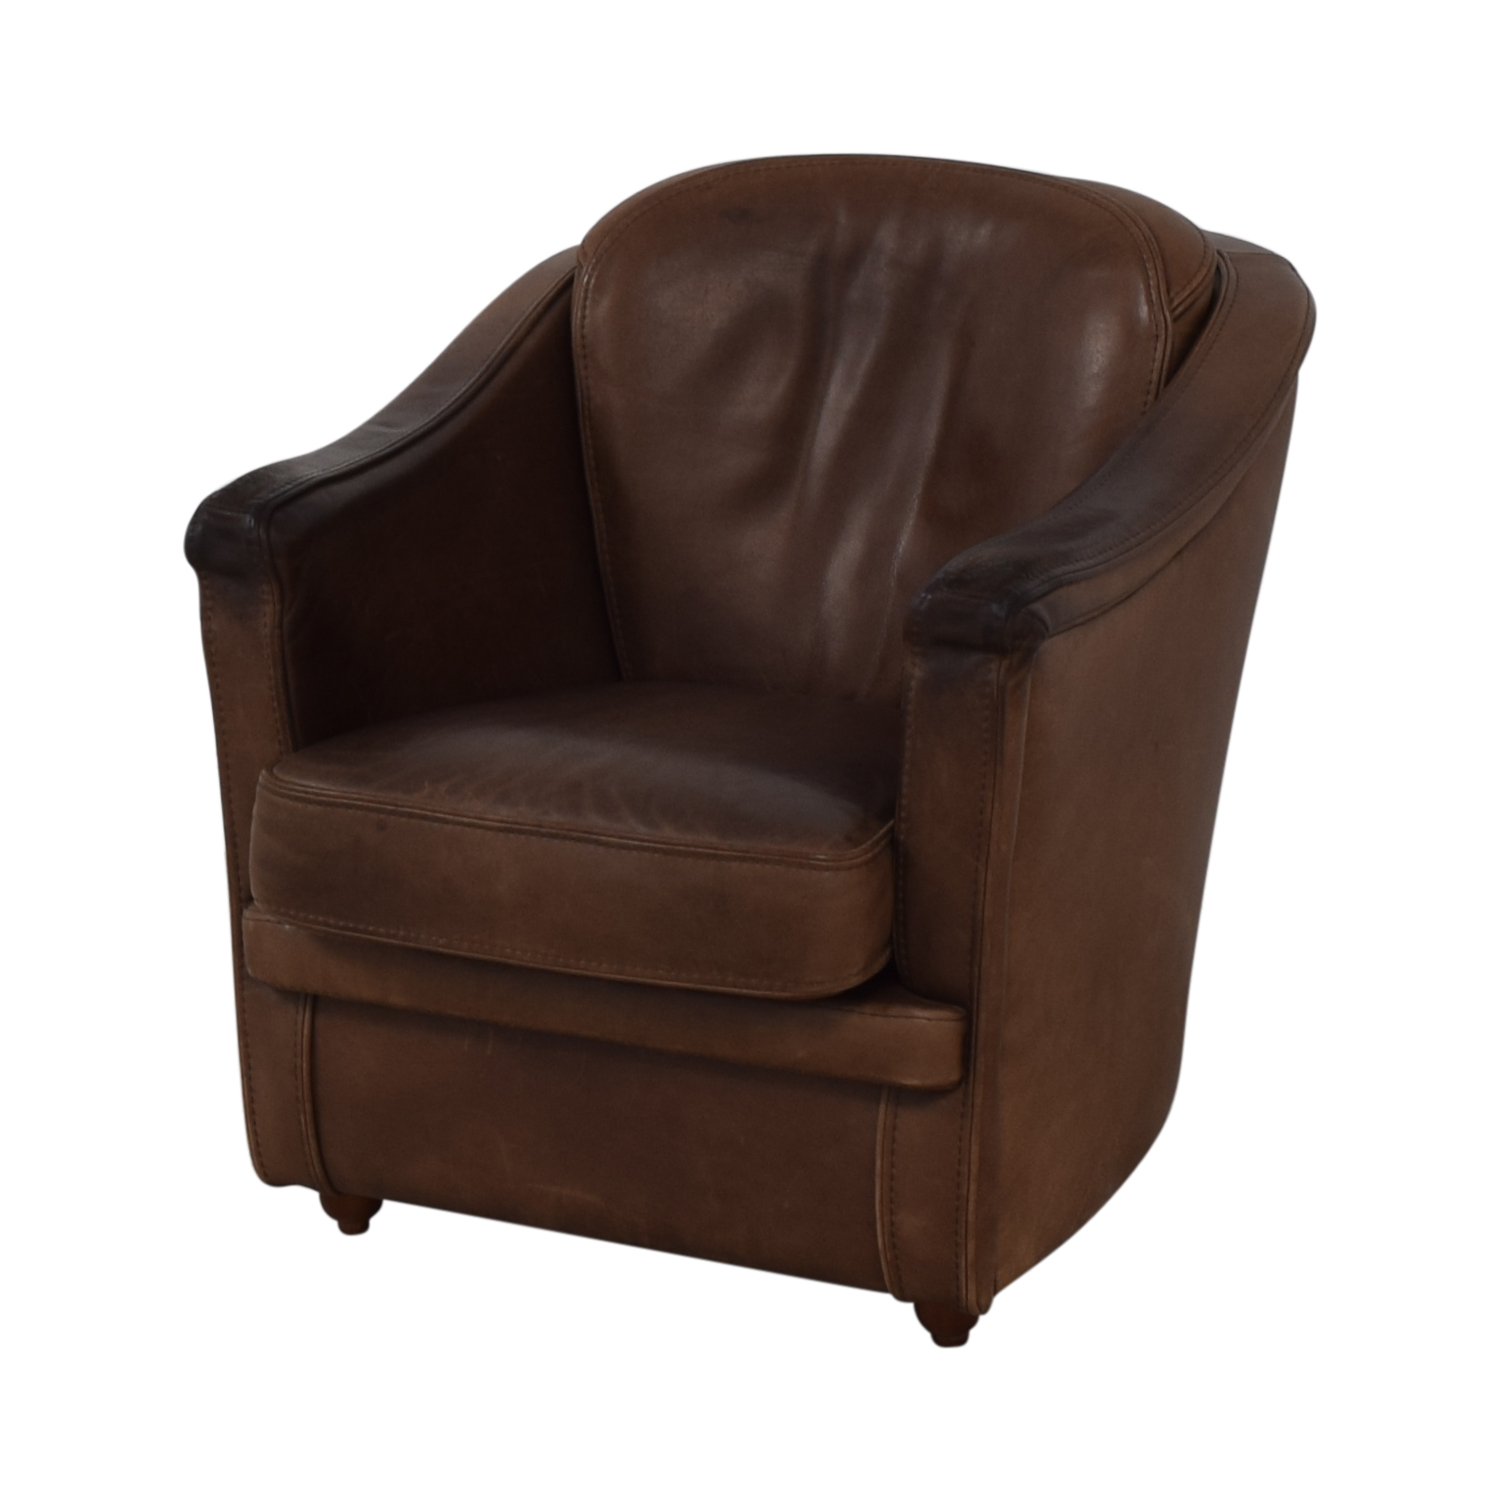 Maurice Villency Maurice Villency Leather Armchair Brown